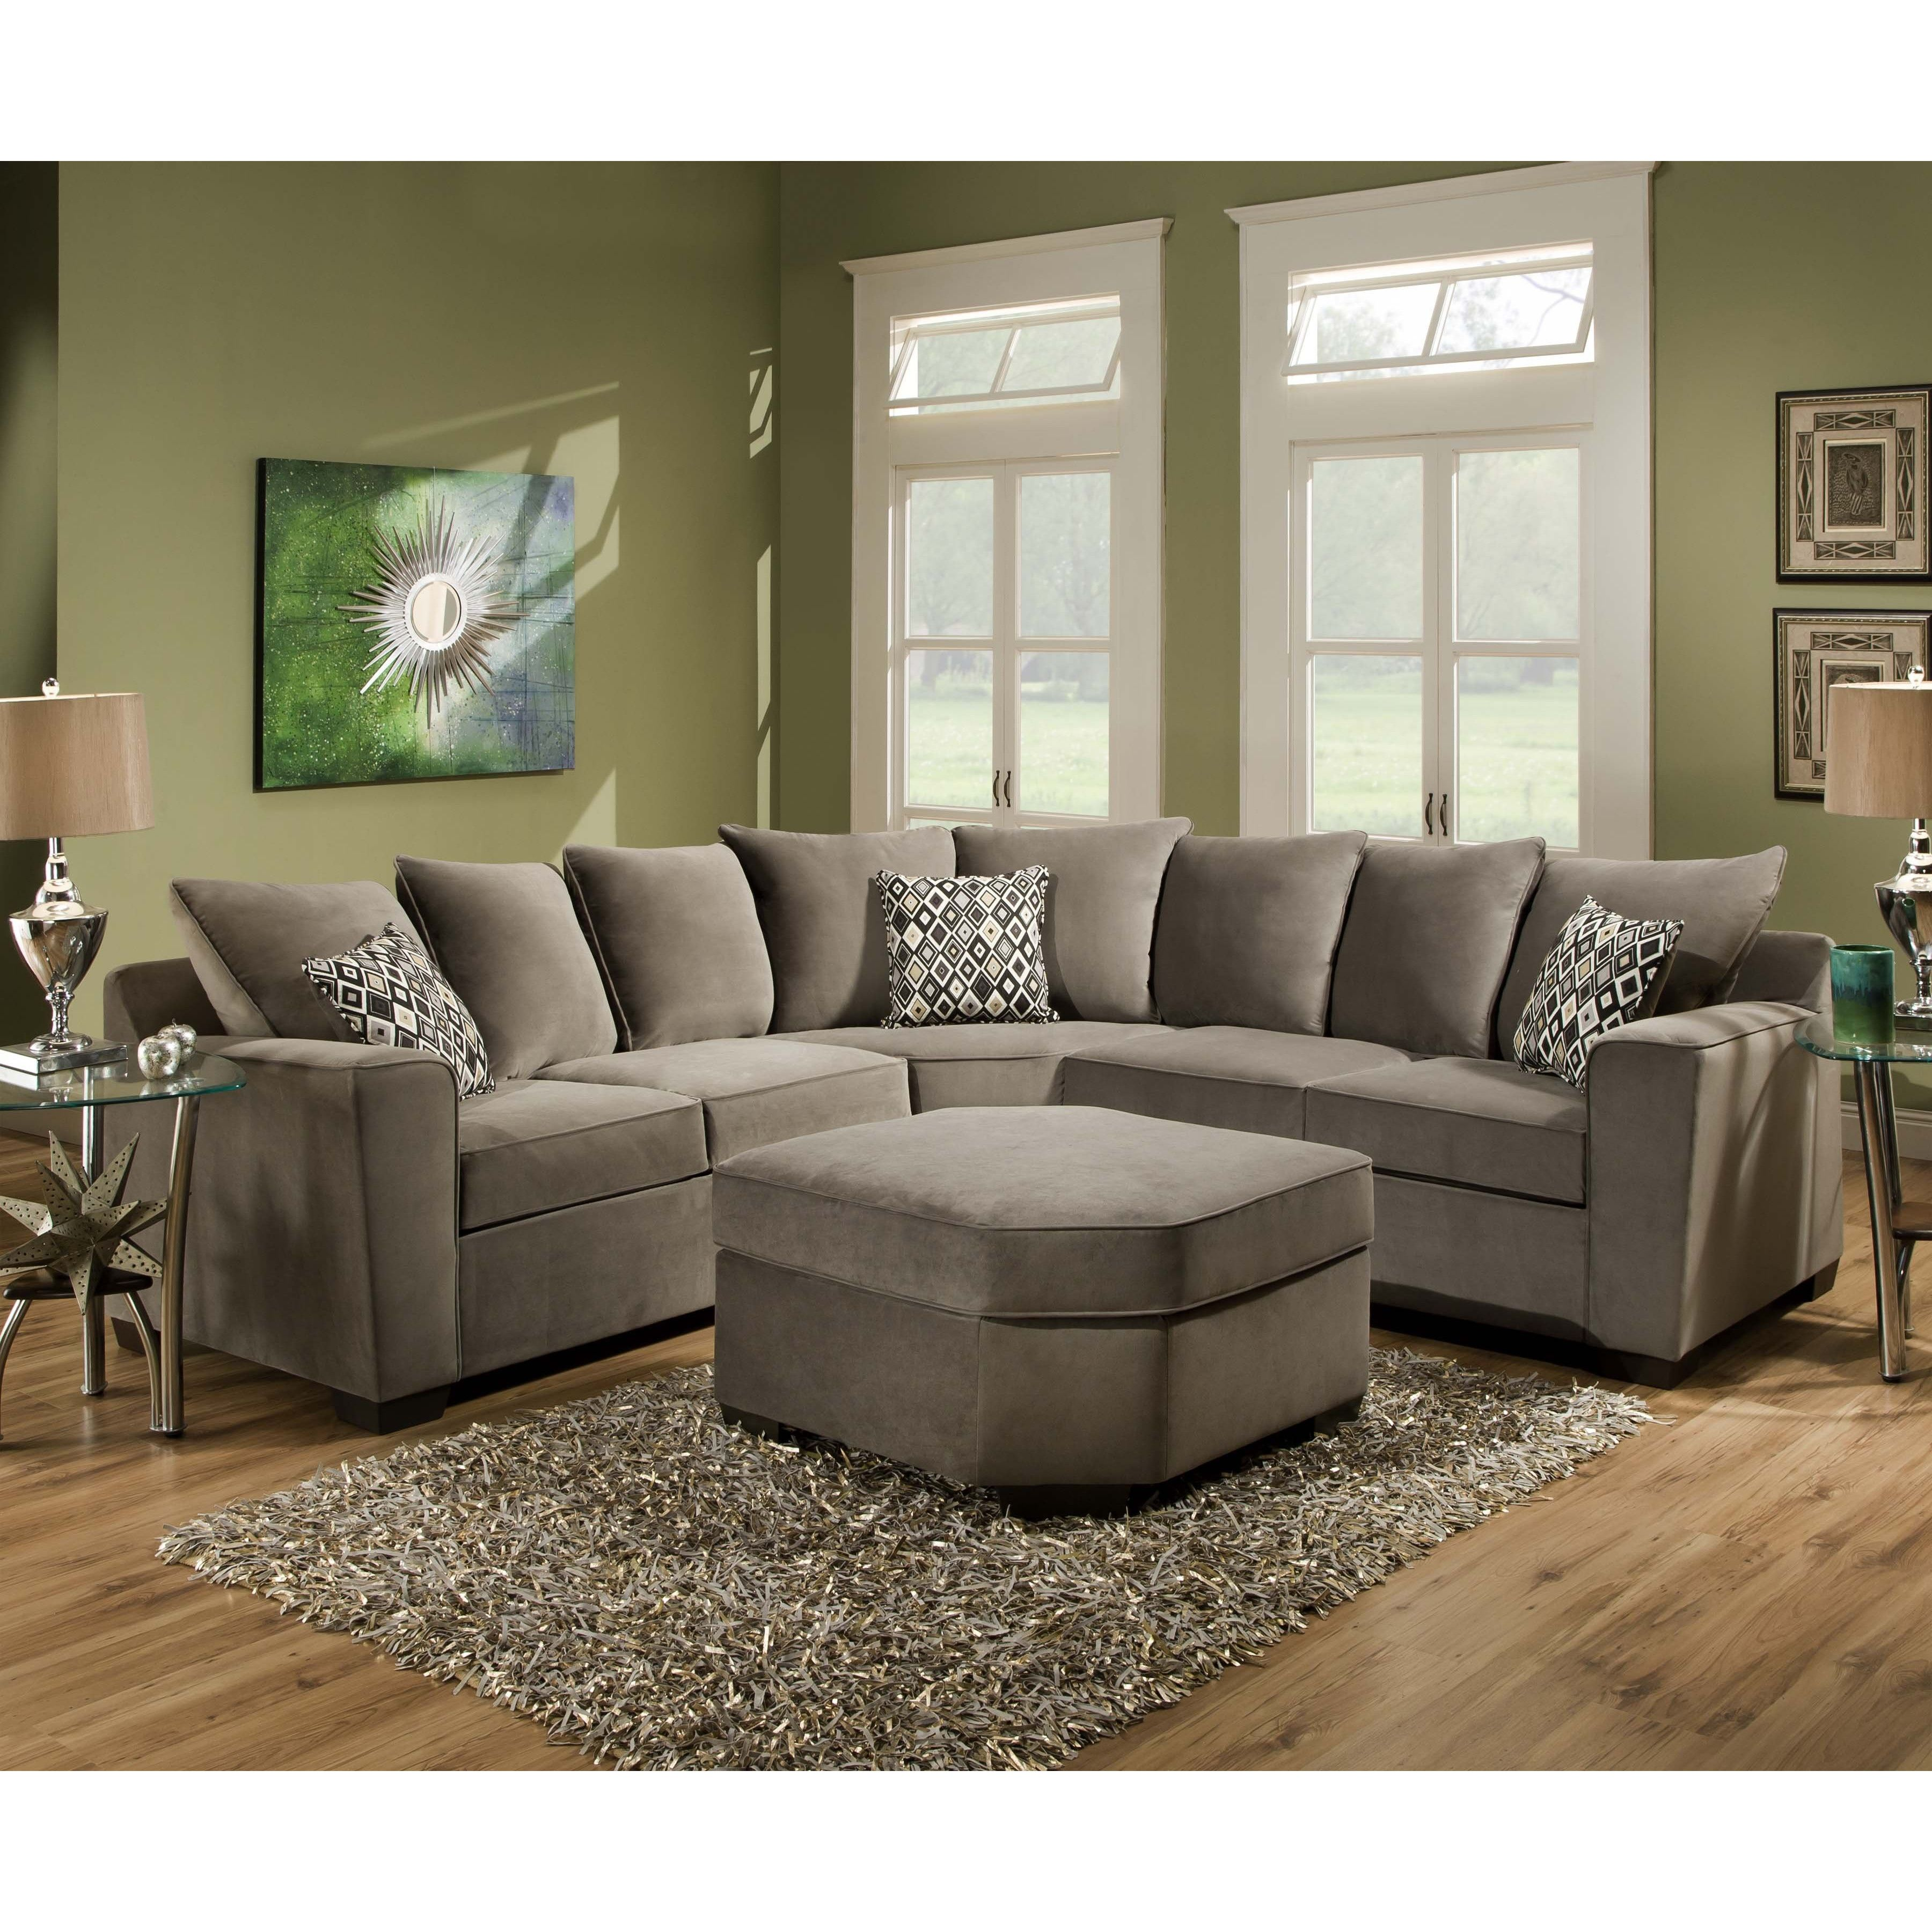 White Sectional Sofa Under 1000 The Actual Sofa Sectional Stays A